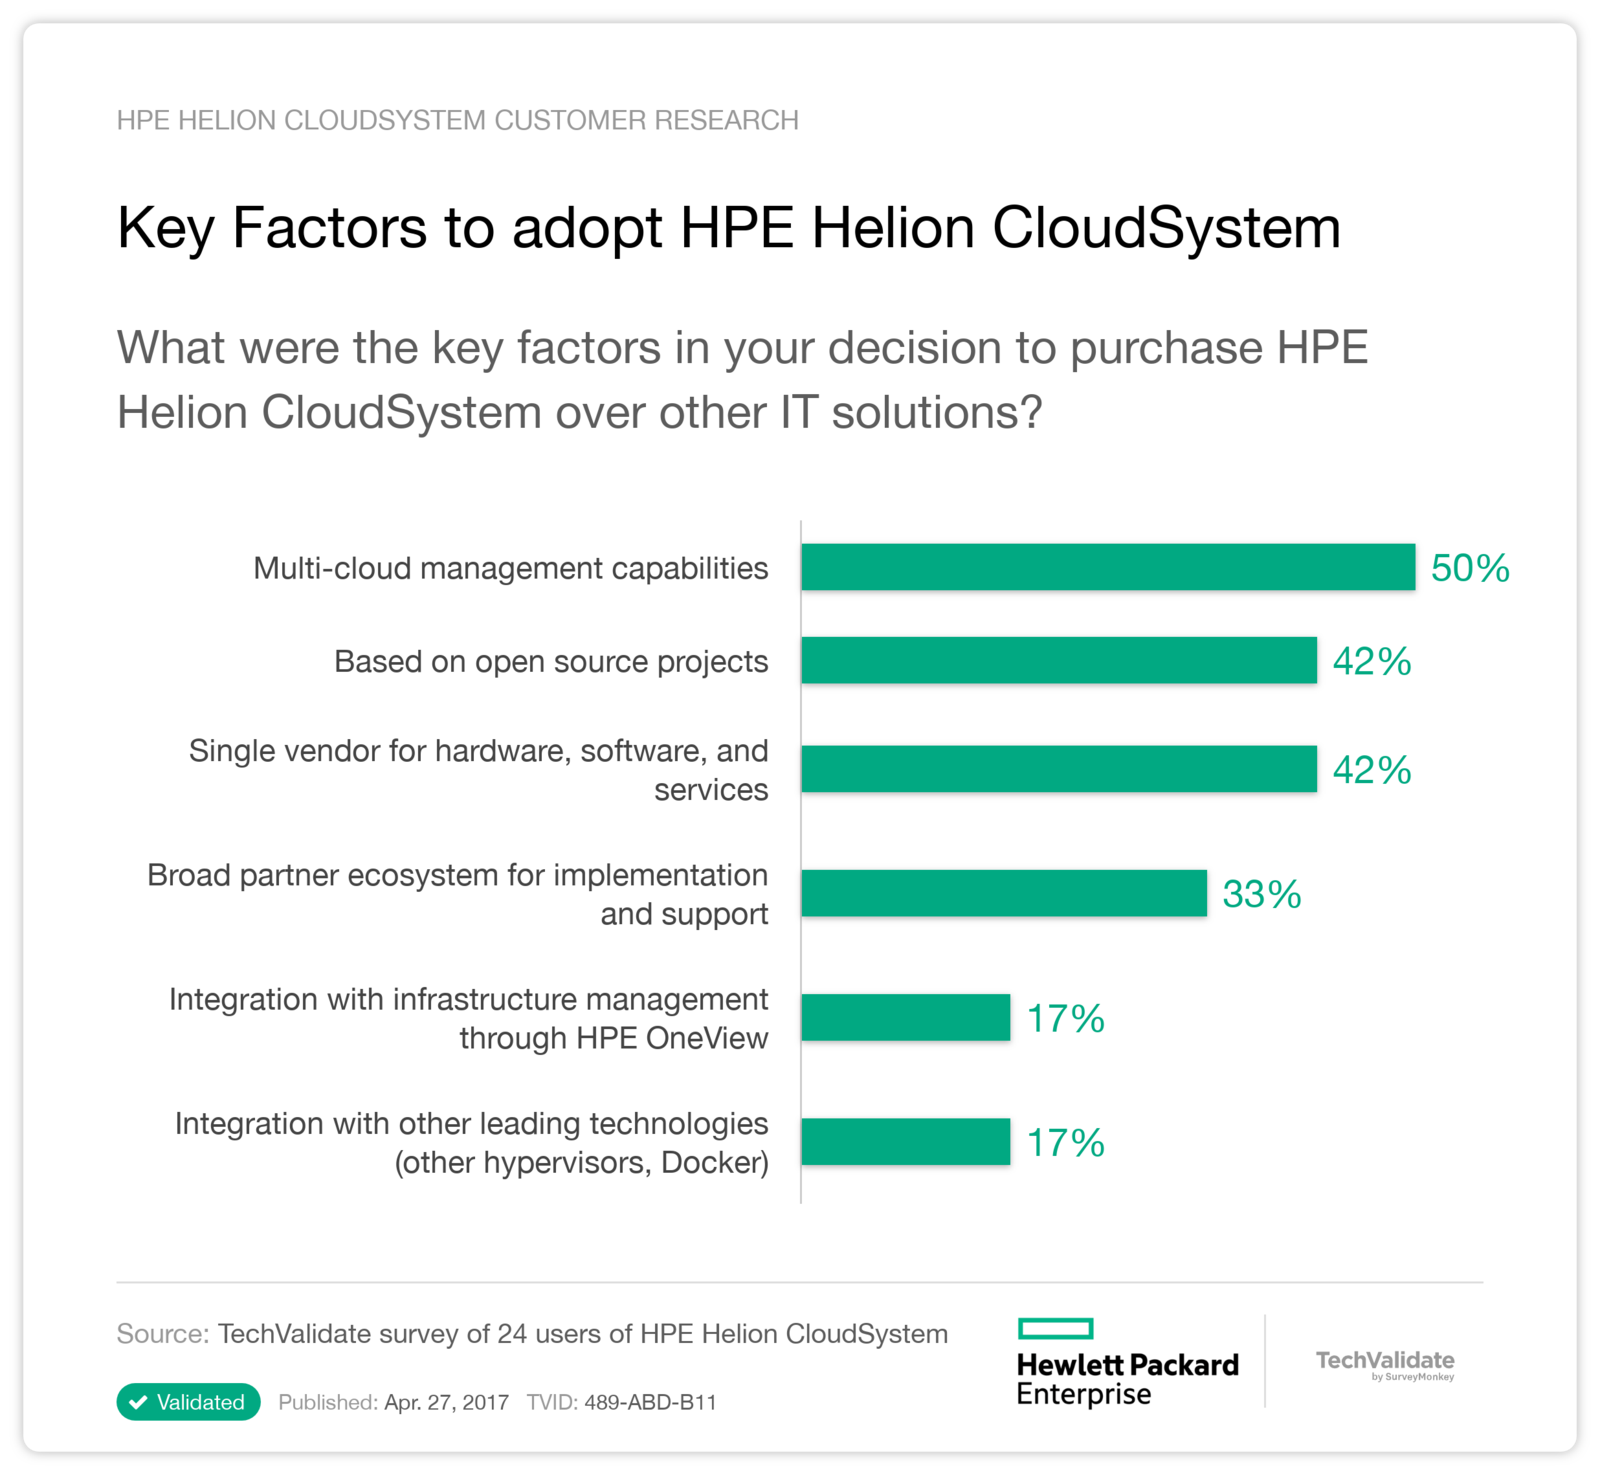 Key Factors to adopt HPE Helion CloudSystem